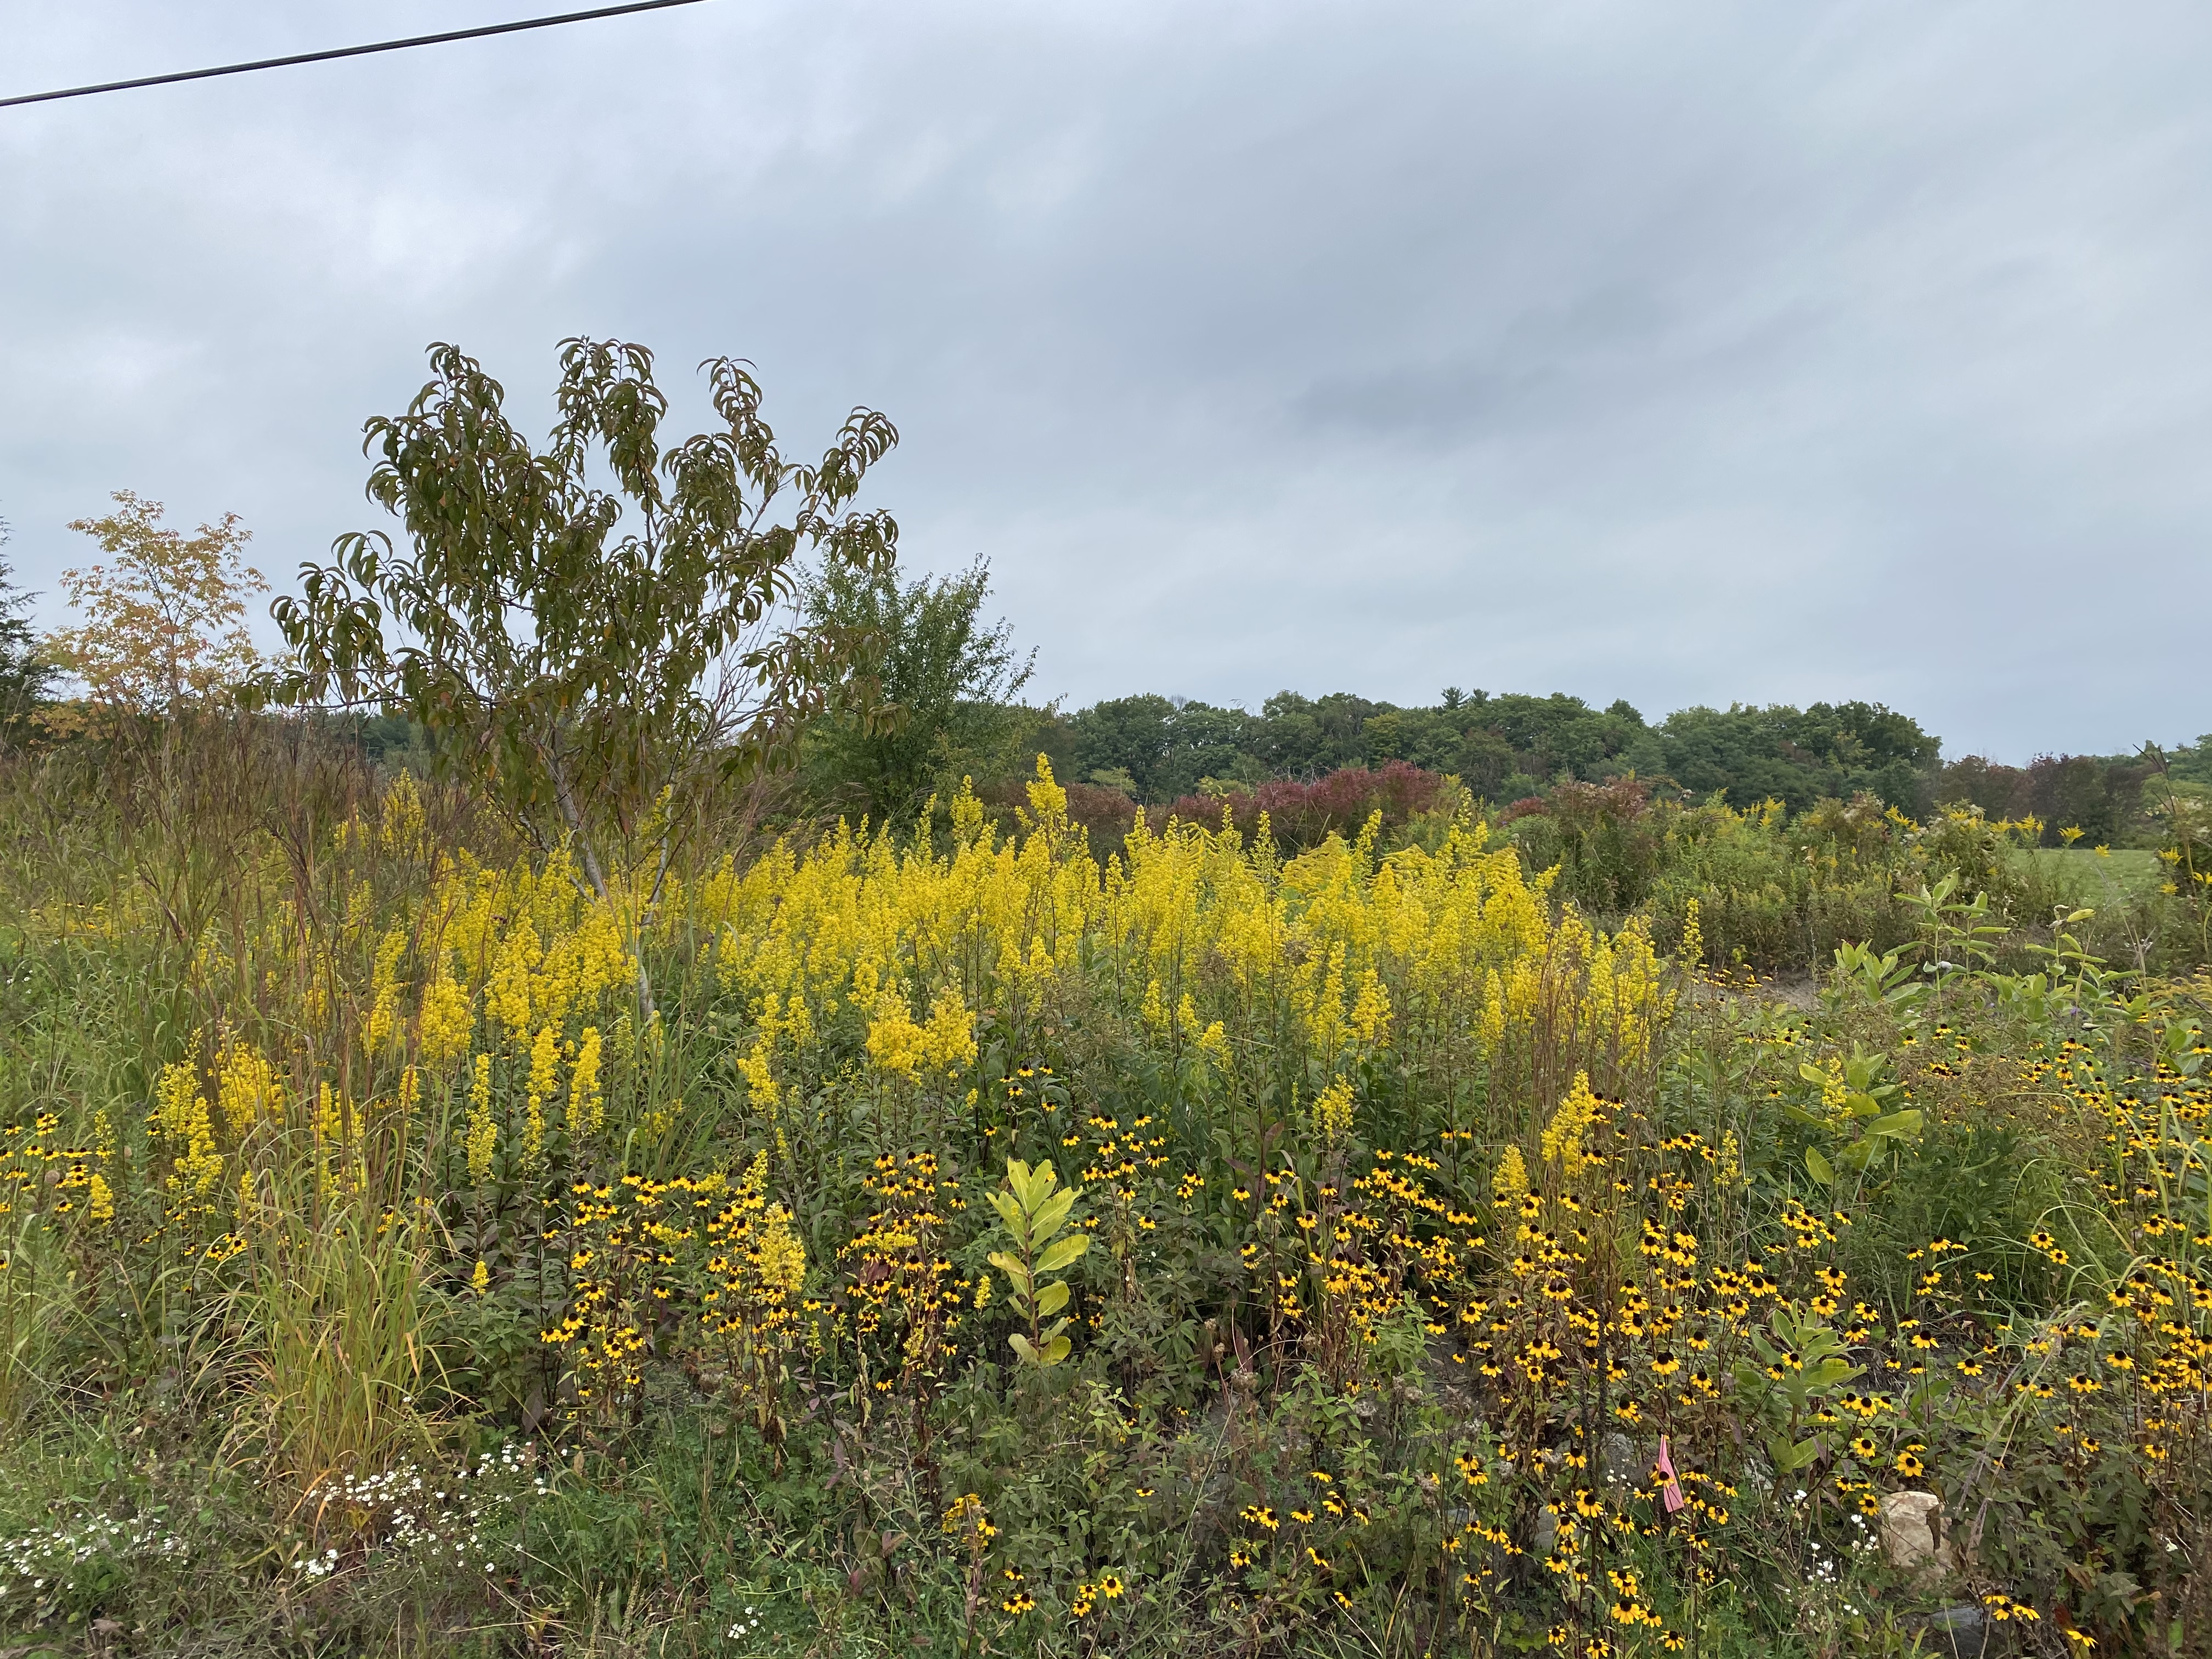 brilliant yellow blooms in late summer/early fall